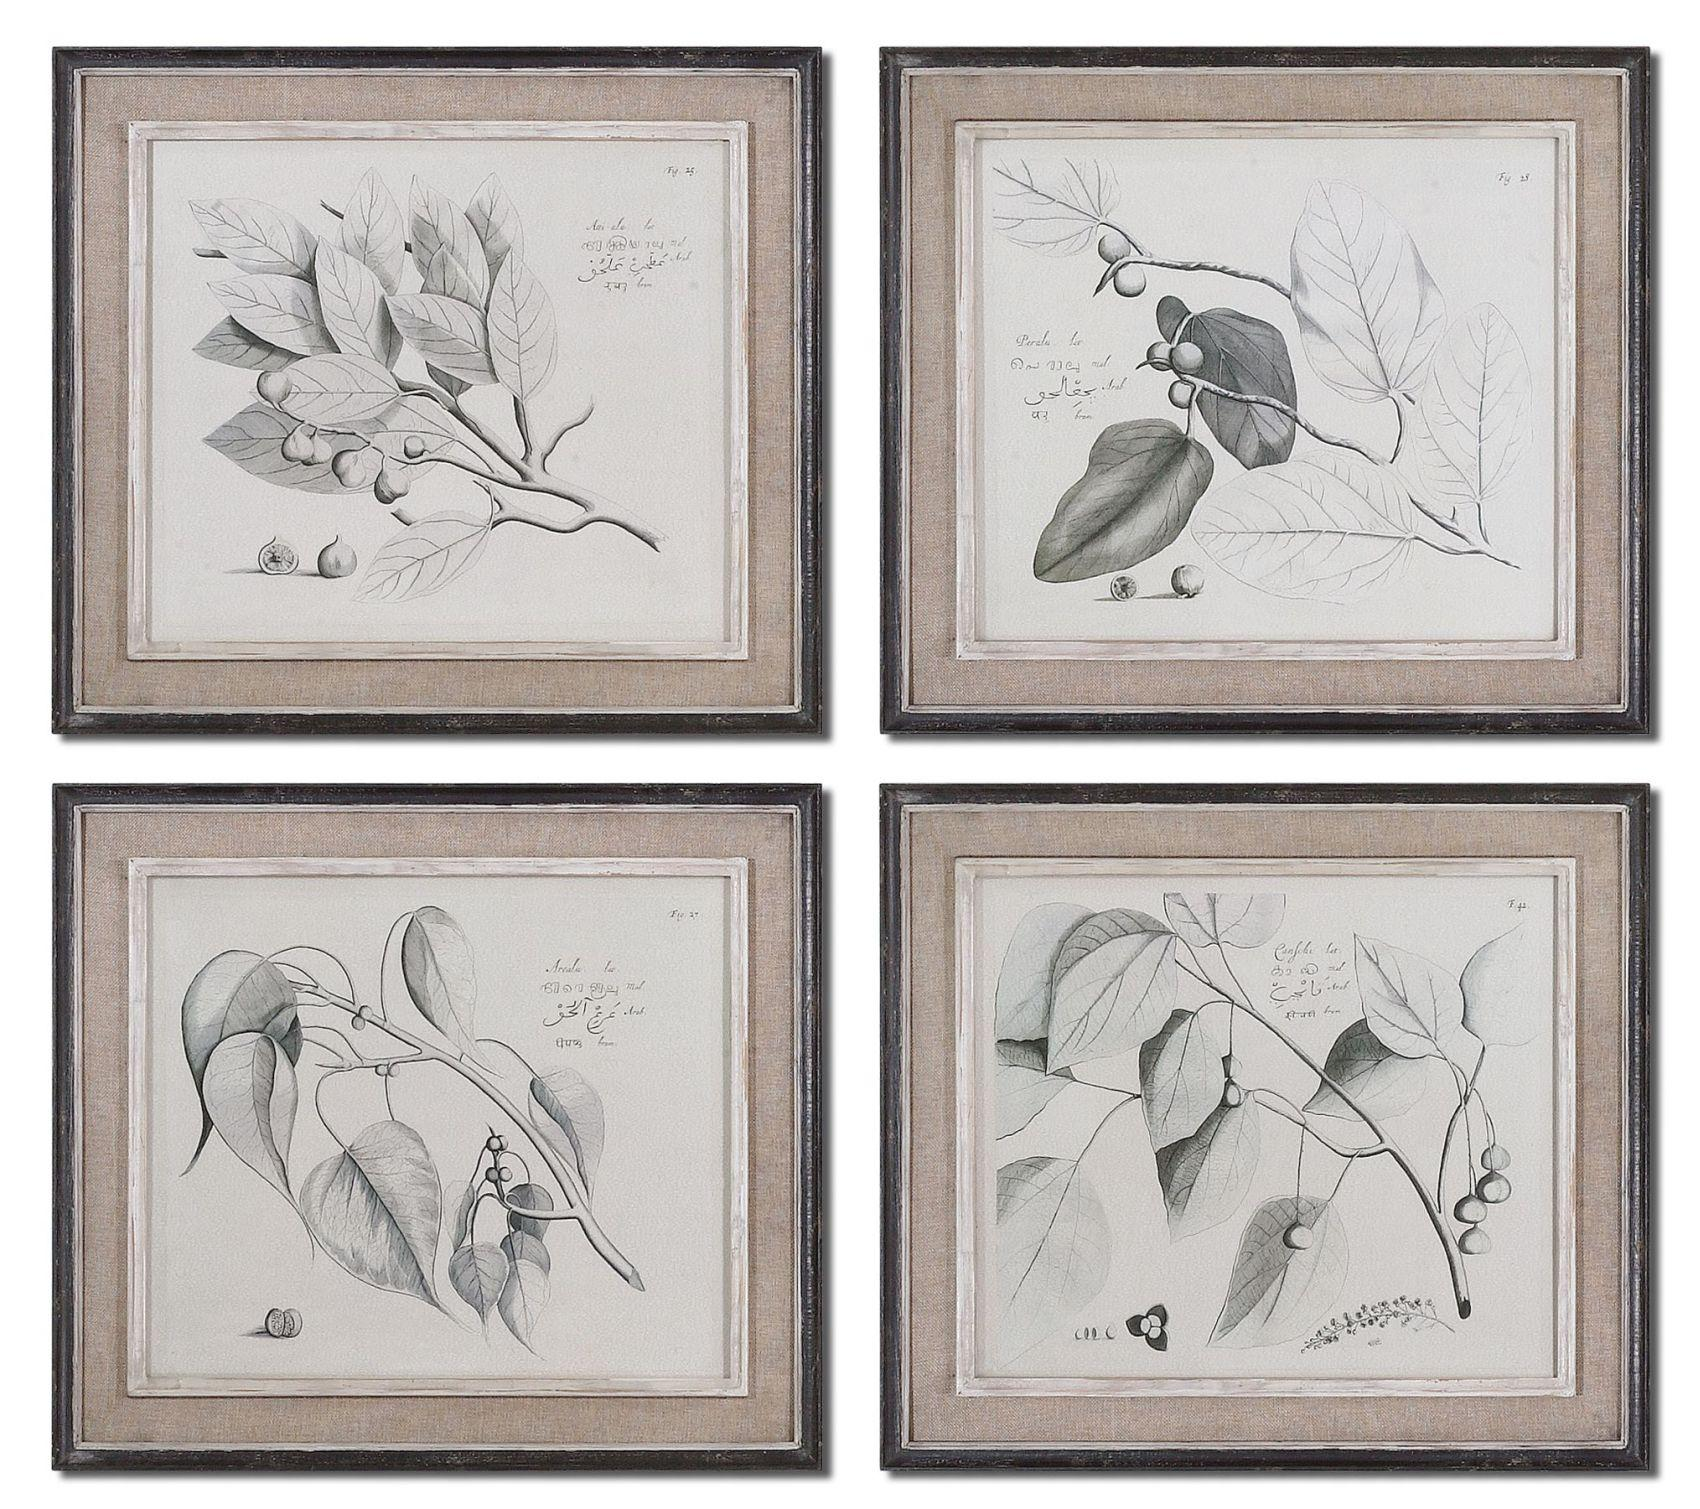 Uttermost Art Sepia Leaf Study Set of 4 - Item Number: 51073